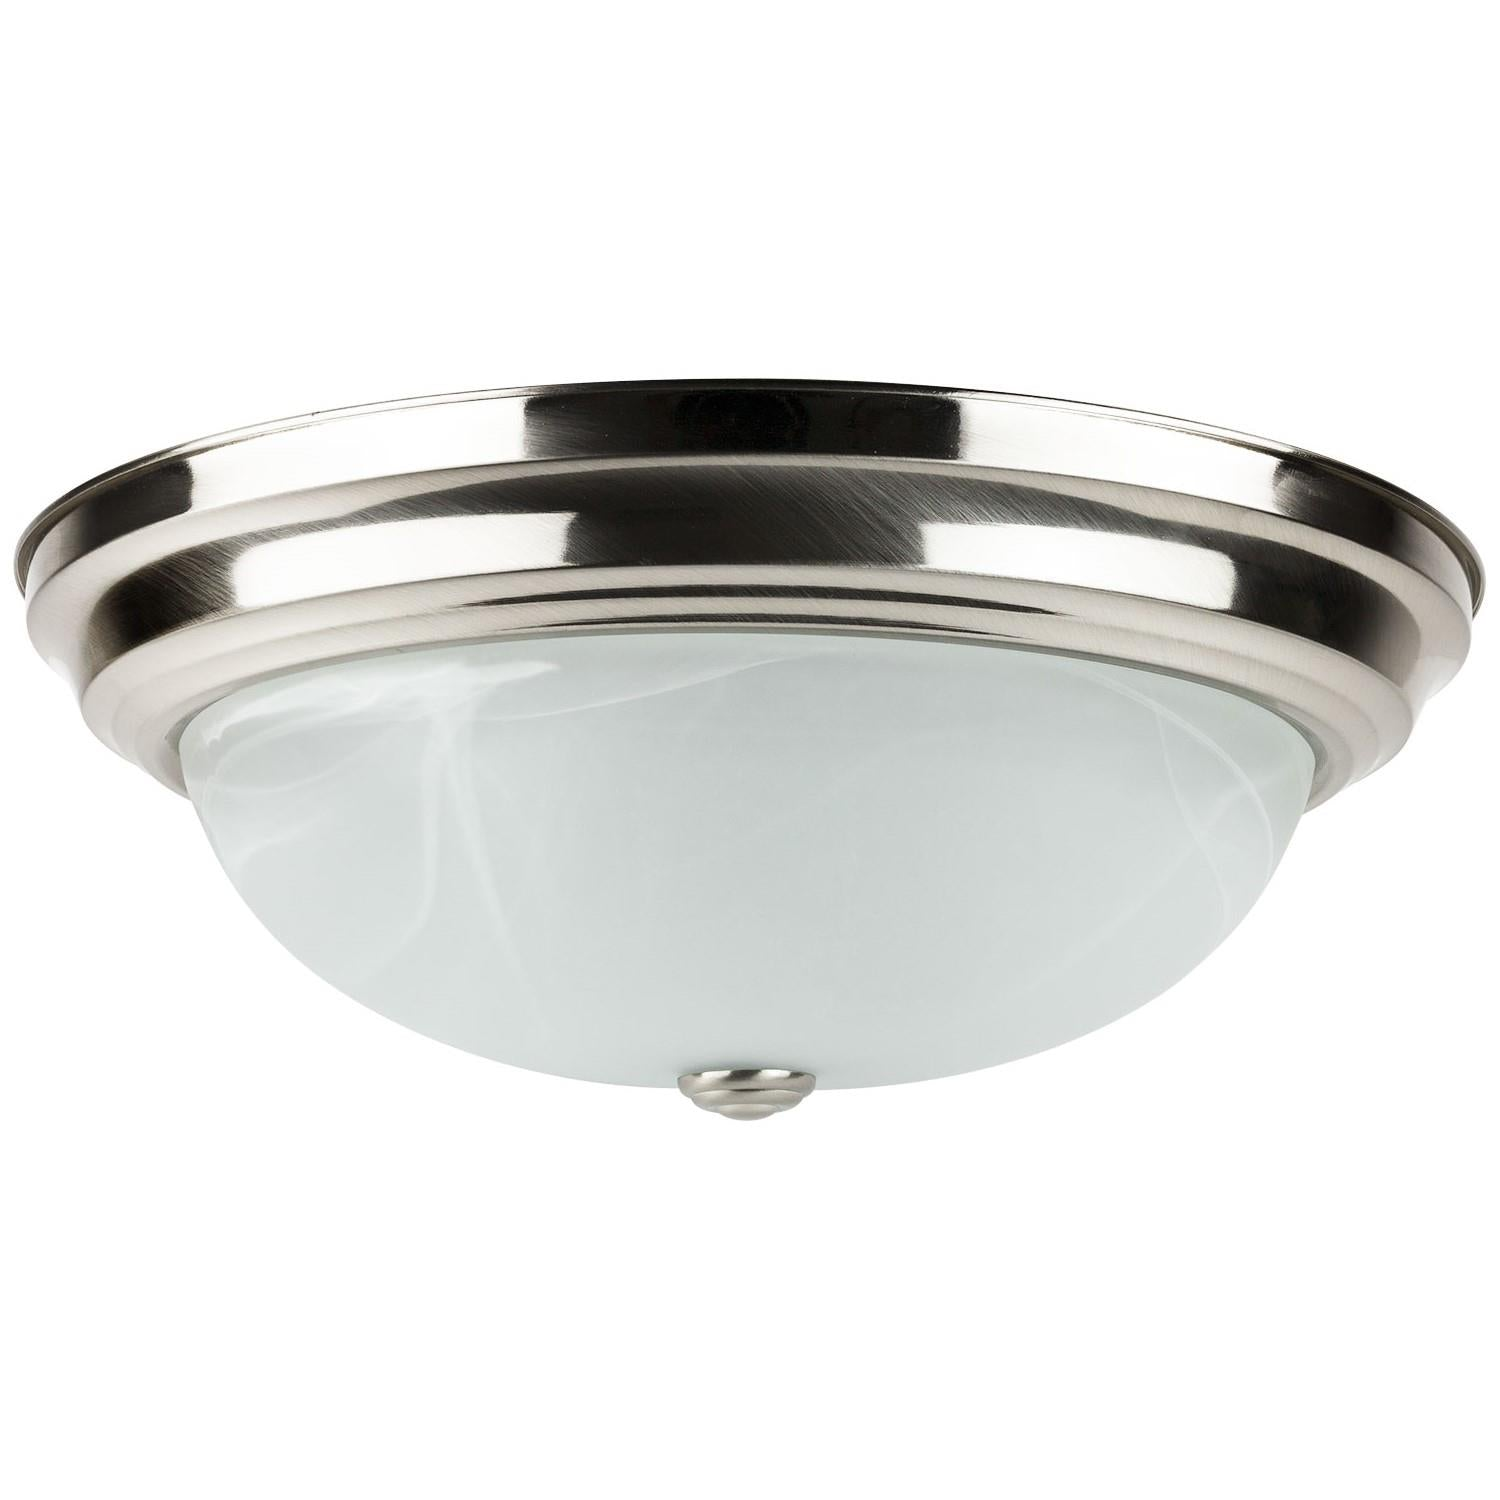 SUNLITE 13in 20w Decorative Dome Style 3000K in Brushed Nickel Finish